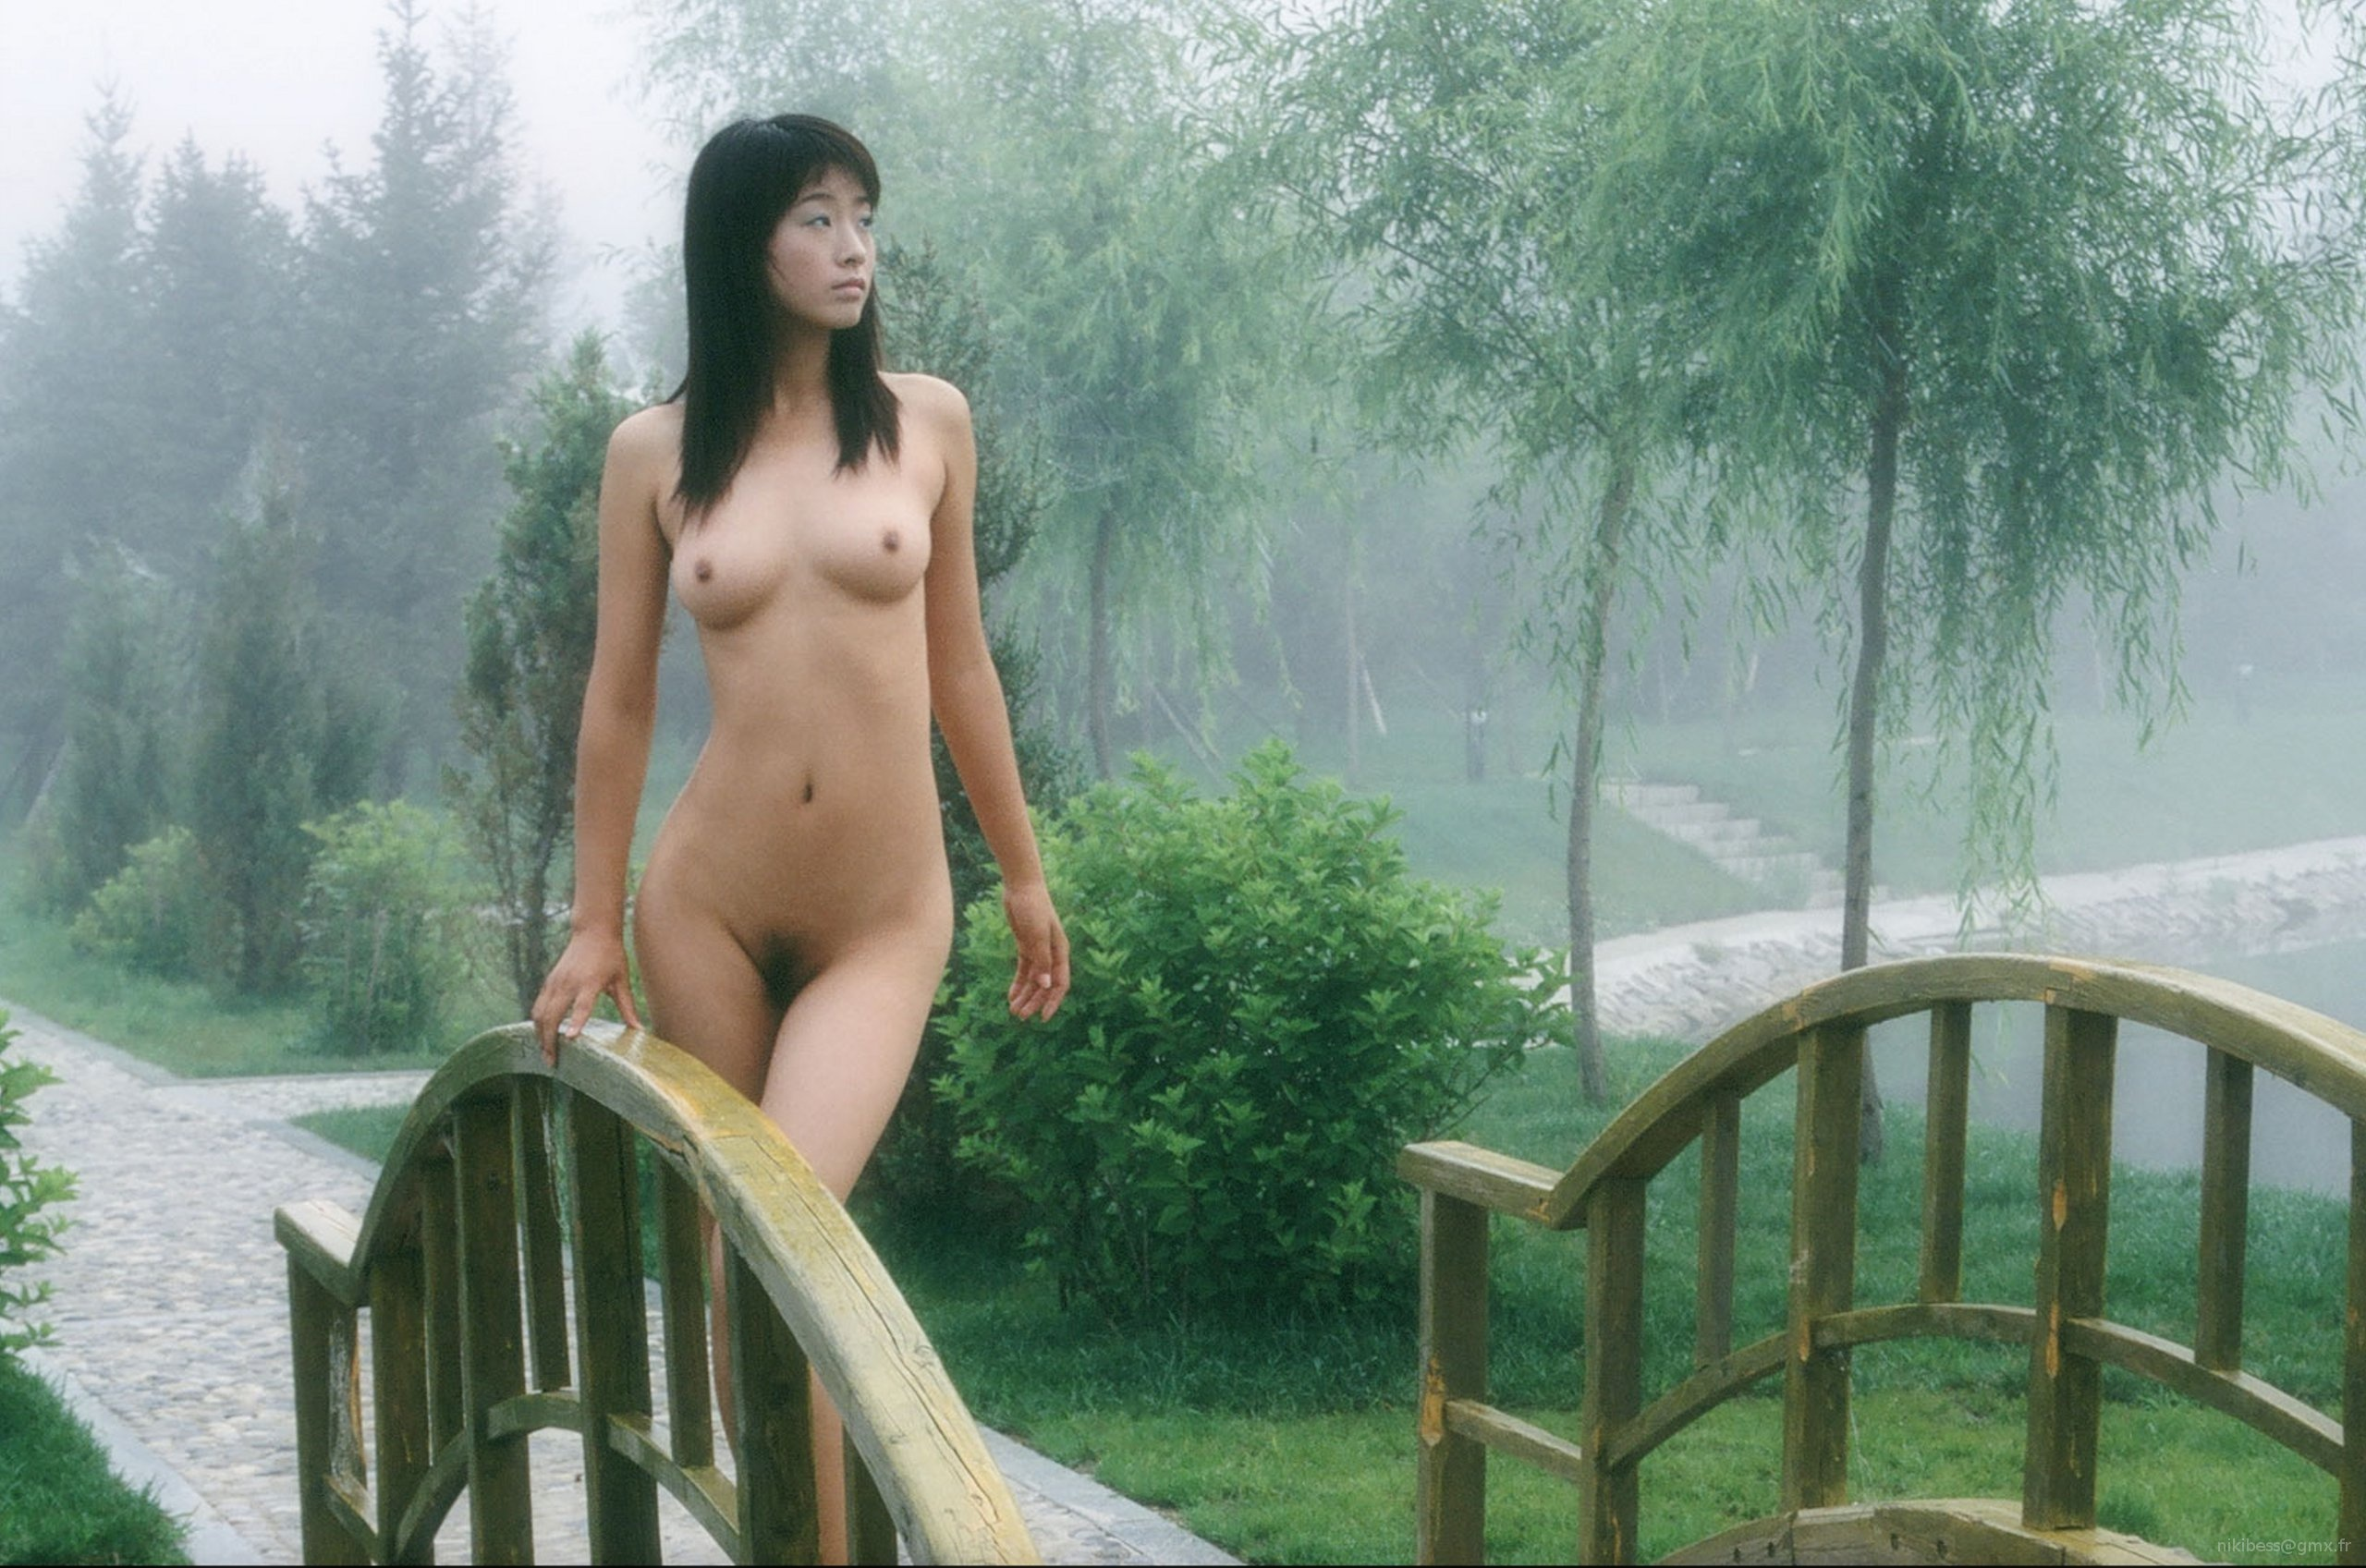 Lie. Asian girls in water naked consider, that